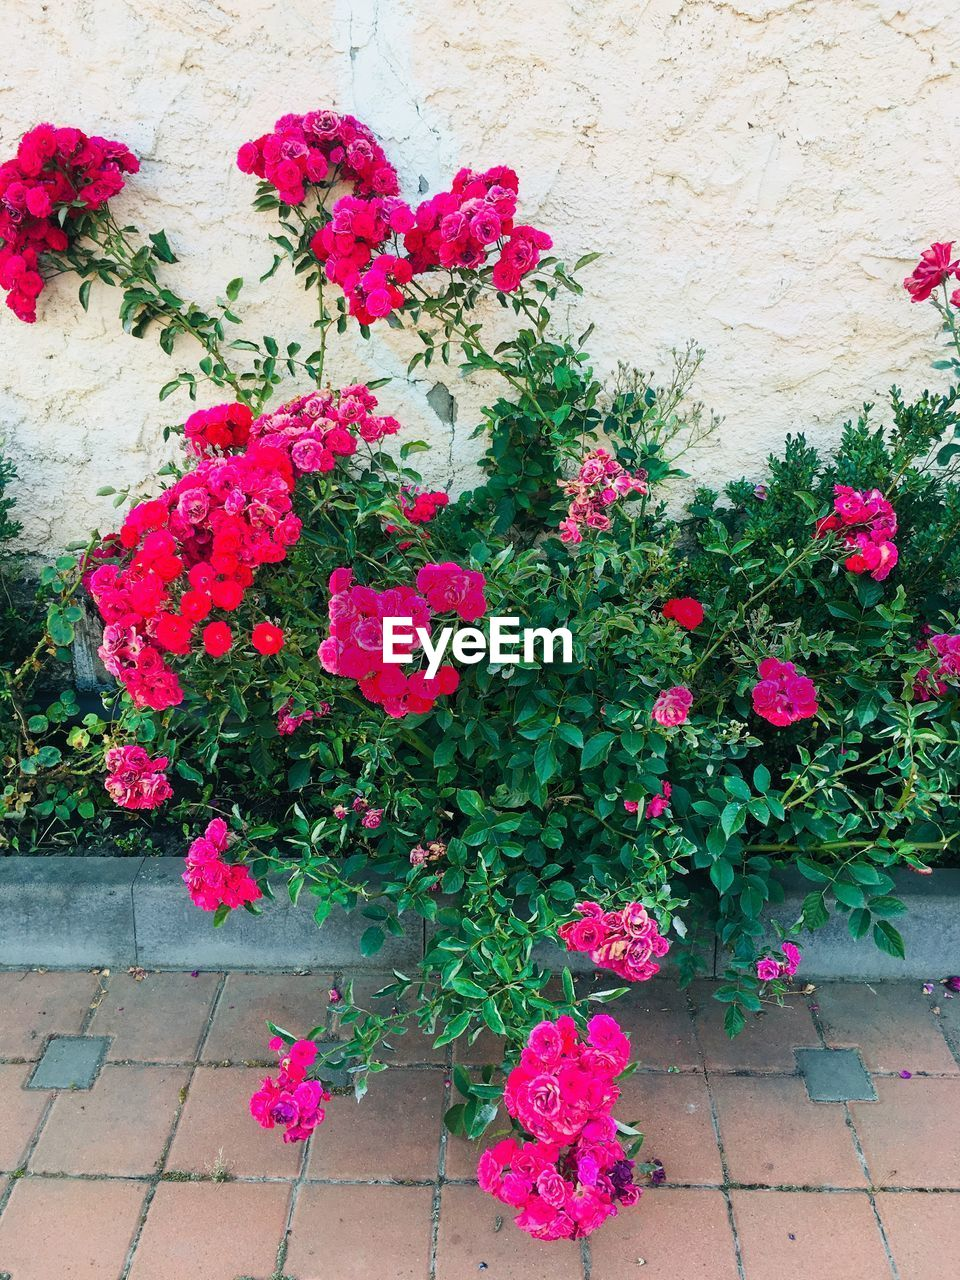 flower, flowering plant, plant, freshness, pink color, growth, beauty in nature, fragility, vulnerability, nature, no people, petal, flower head, plant part, multi colored, leaf, day, outdoors, inflorescence, choice, flower pot, flower arrangement, bunch of flowers